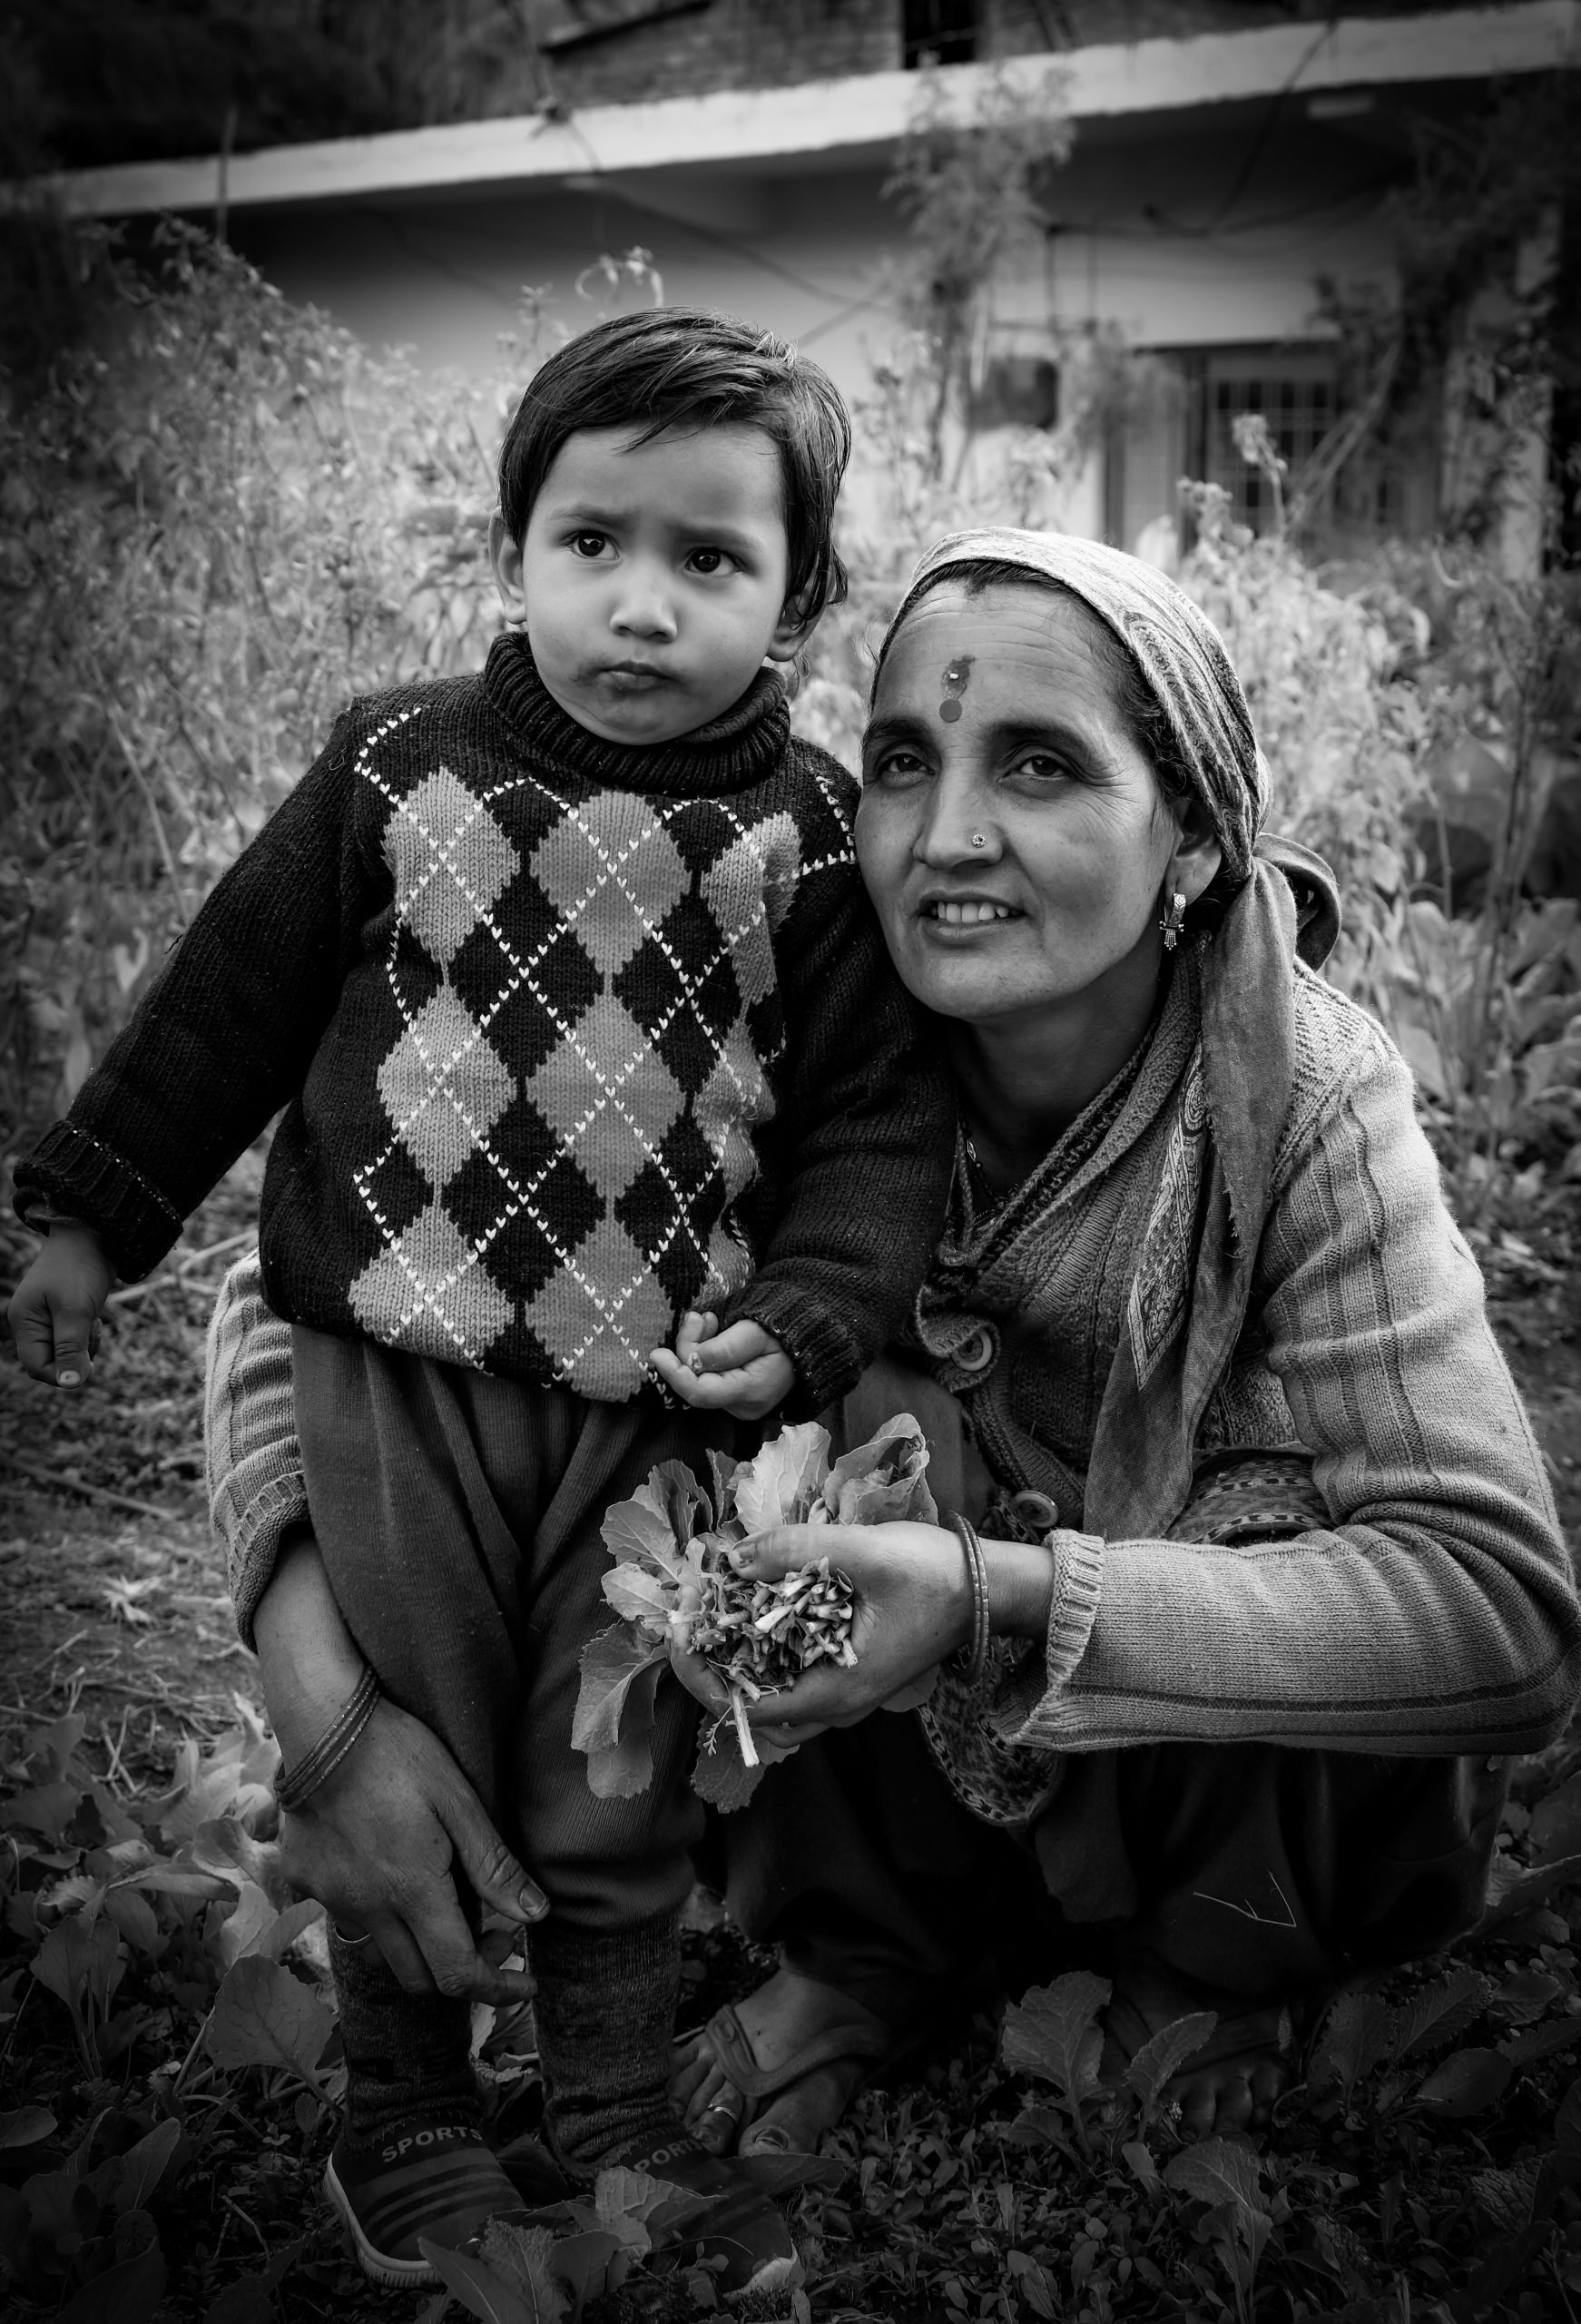 A village woman with a kid